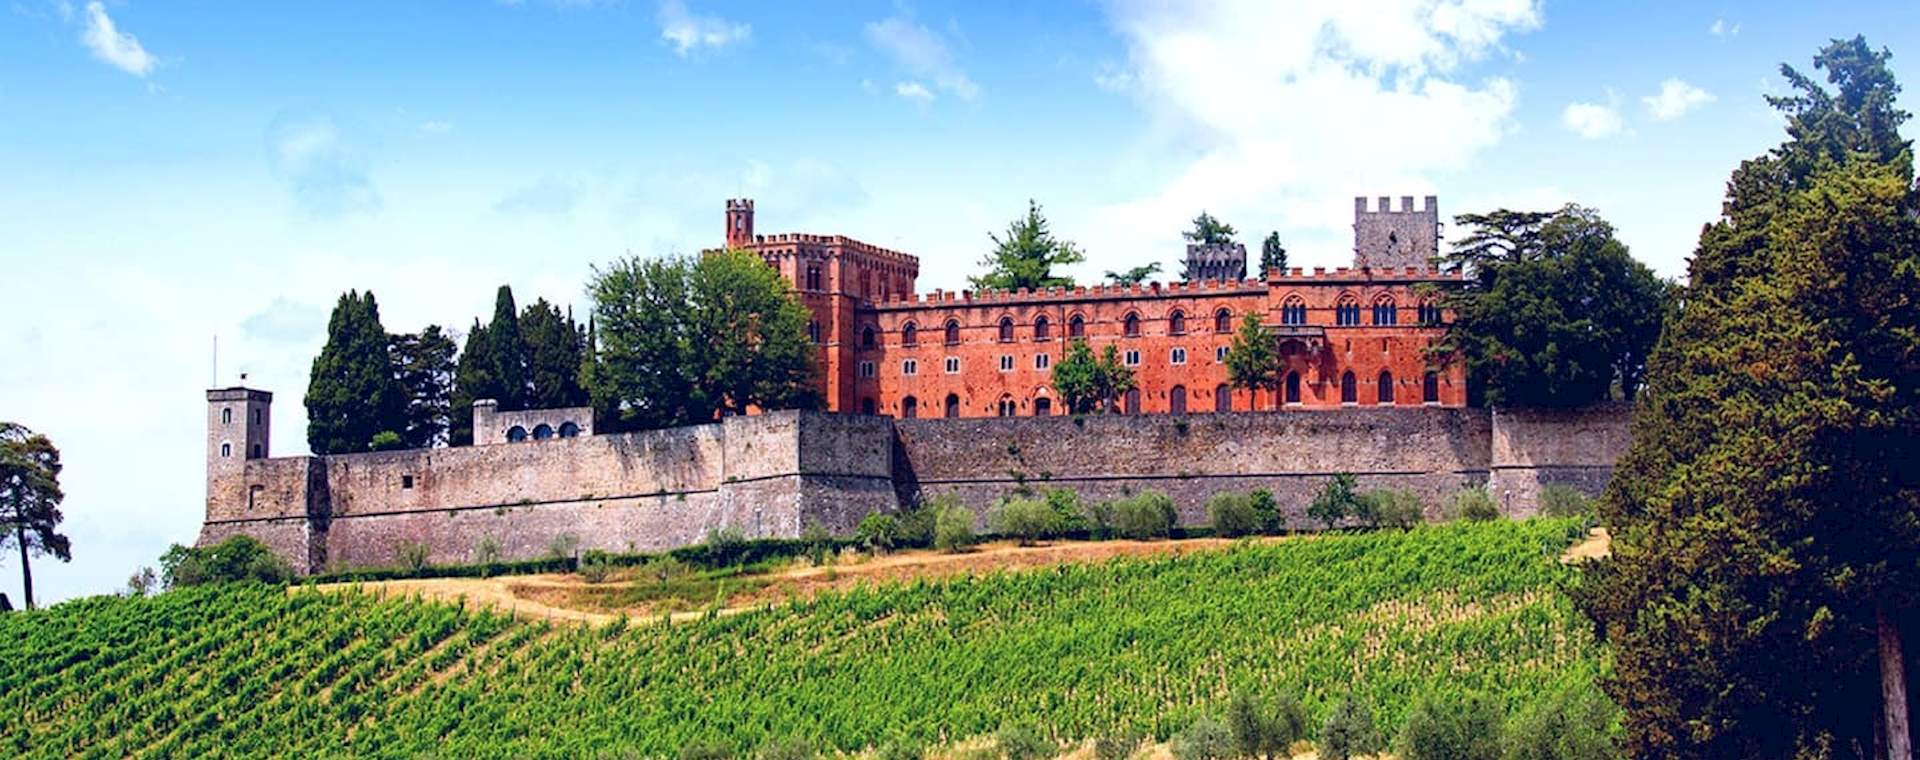 Day Trip: Tuscany Castles Tour with Chianti Wine Tasting